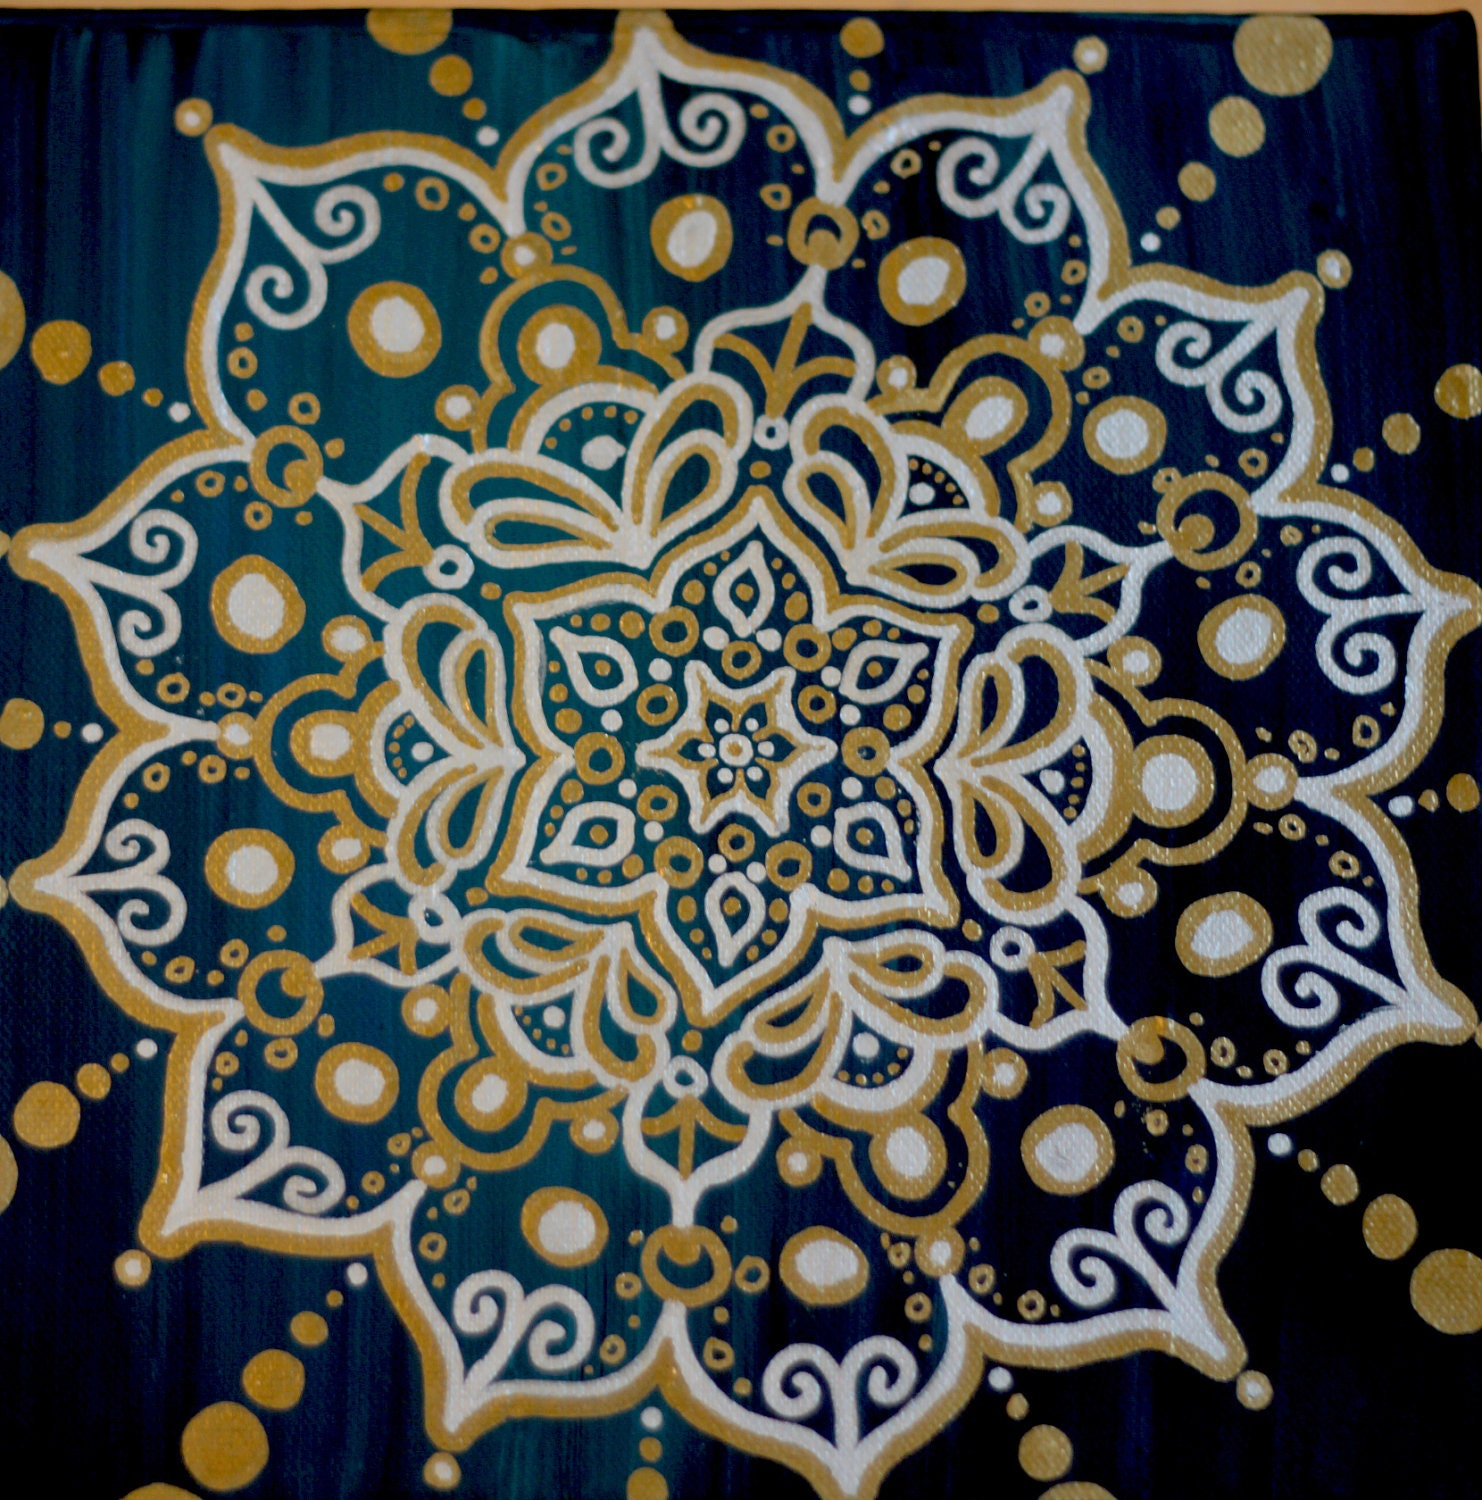 Intricate Design On Gold And Blue Painting